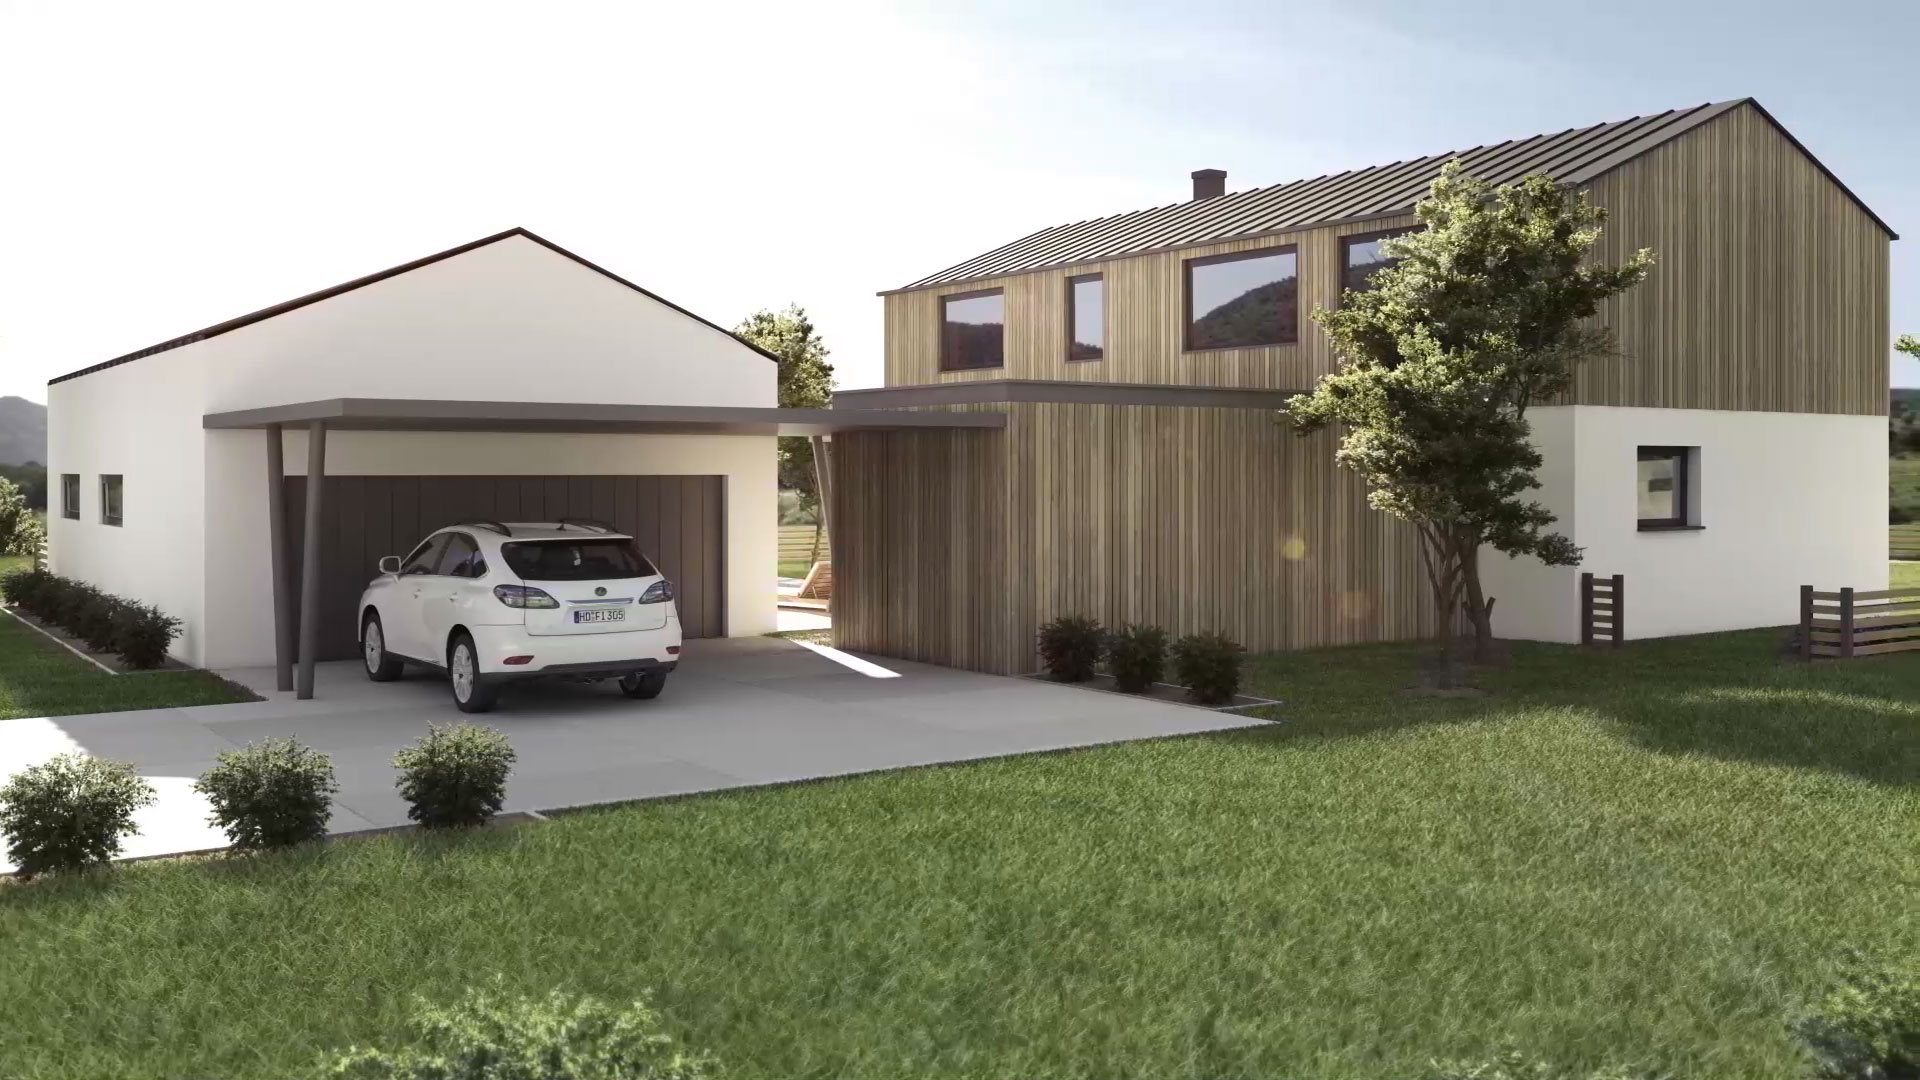 3d Animation Architektur Haus Immobilie